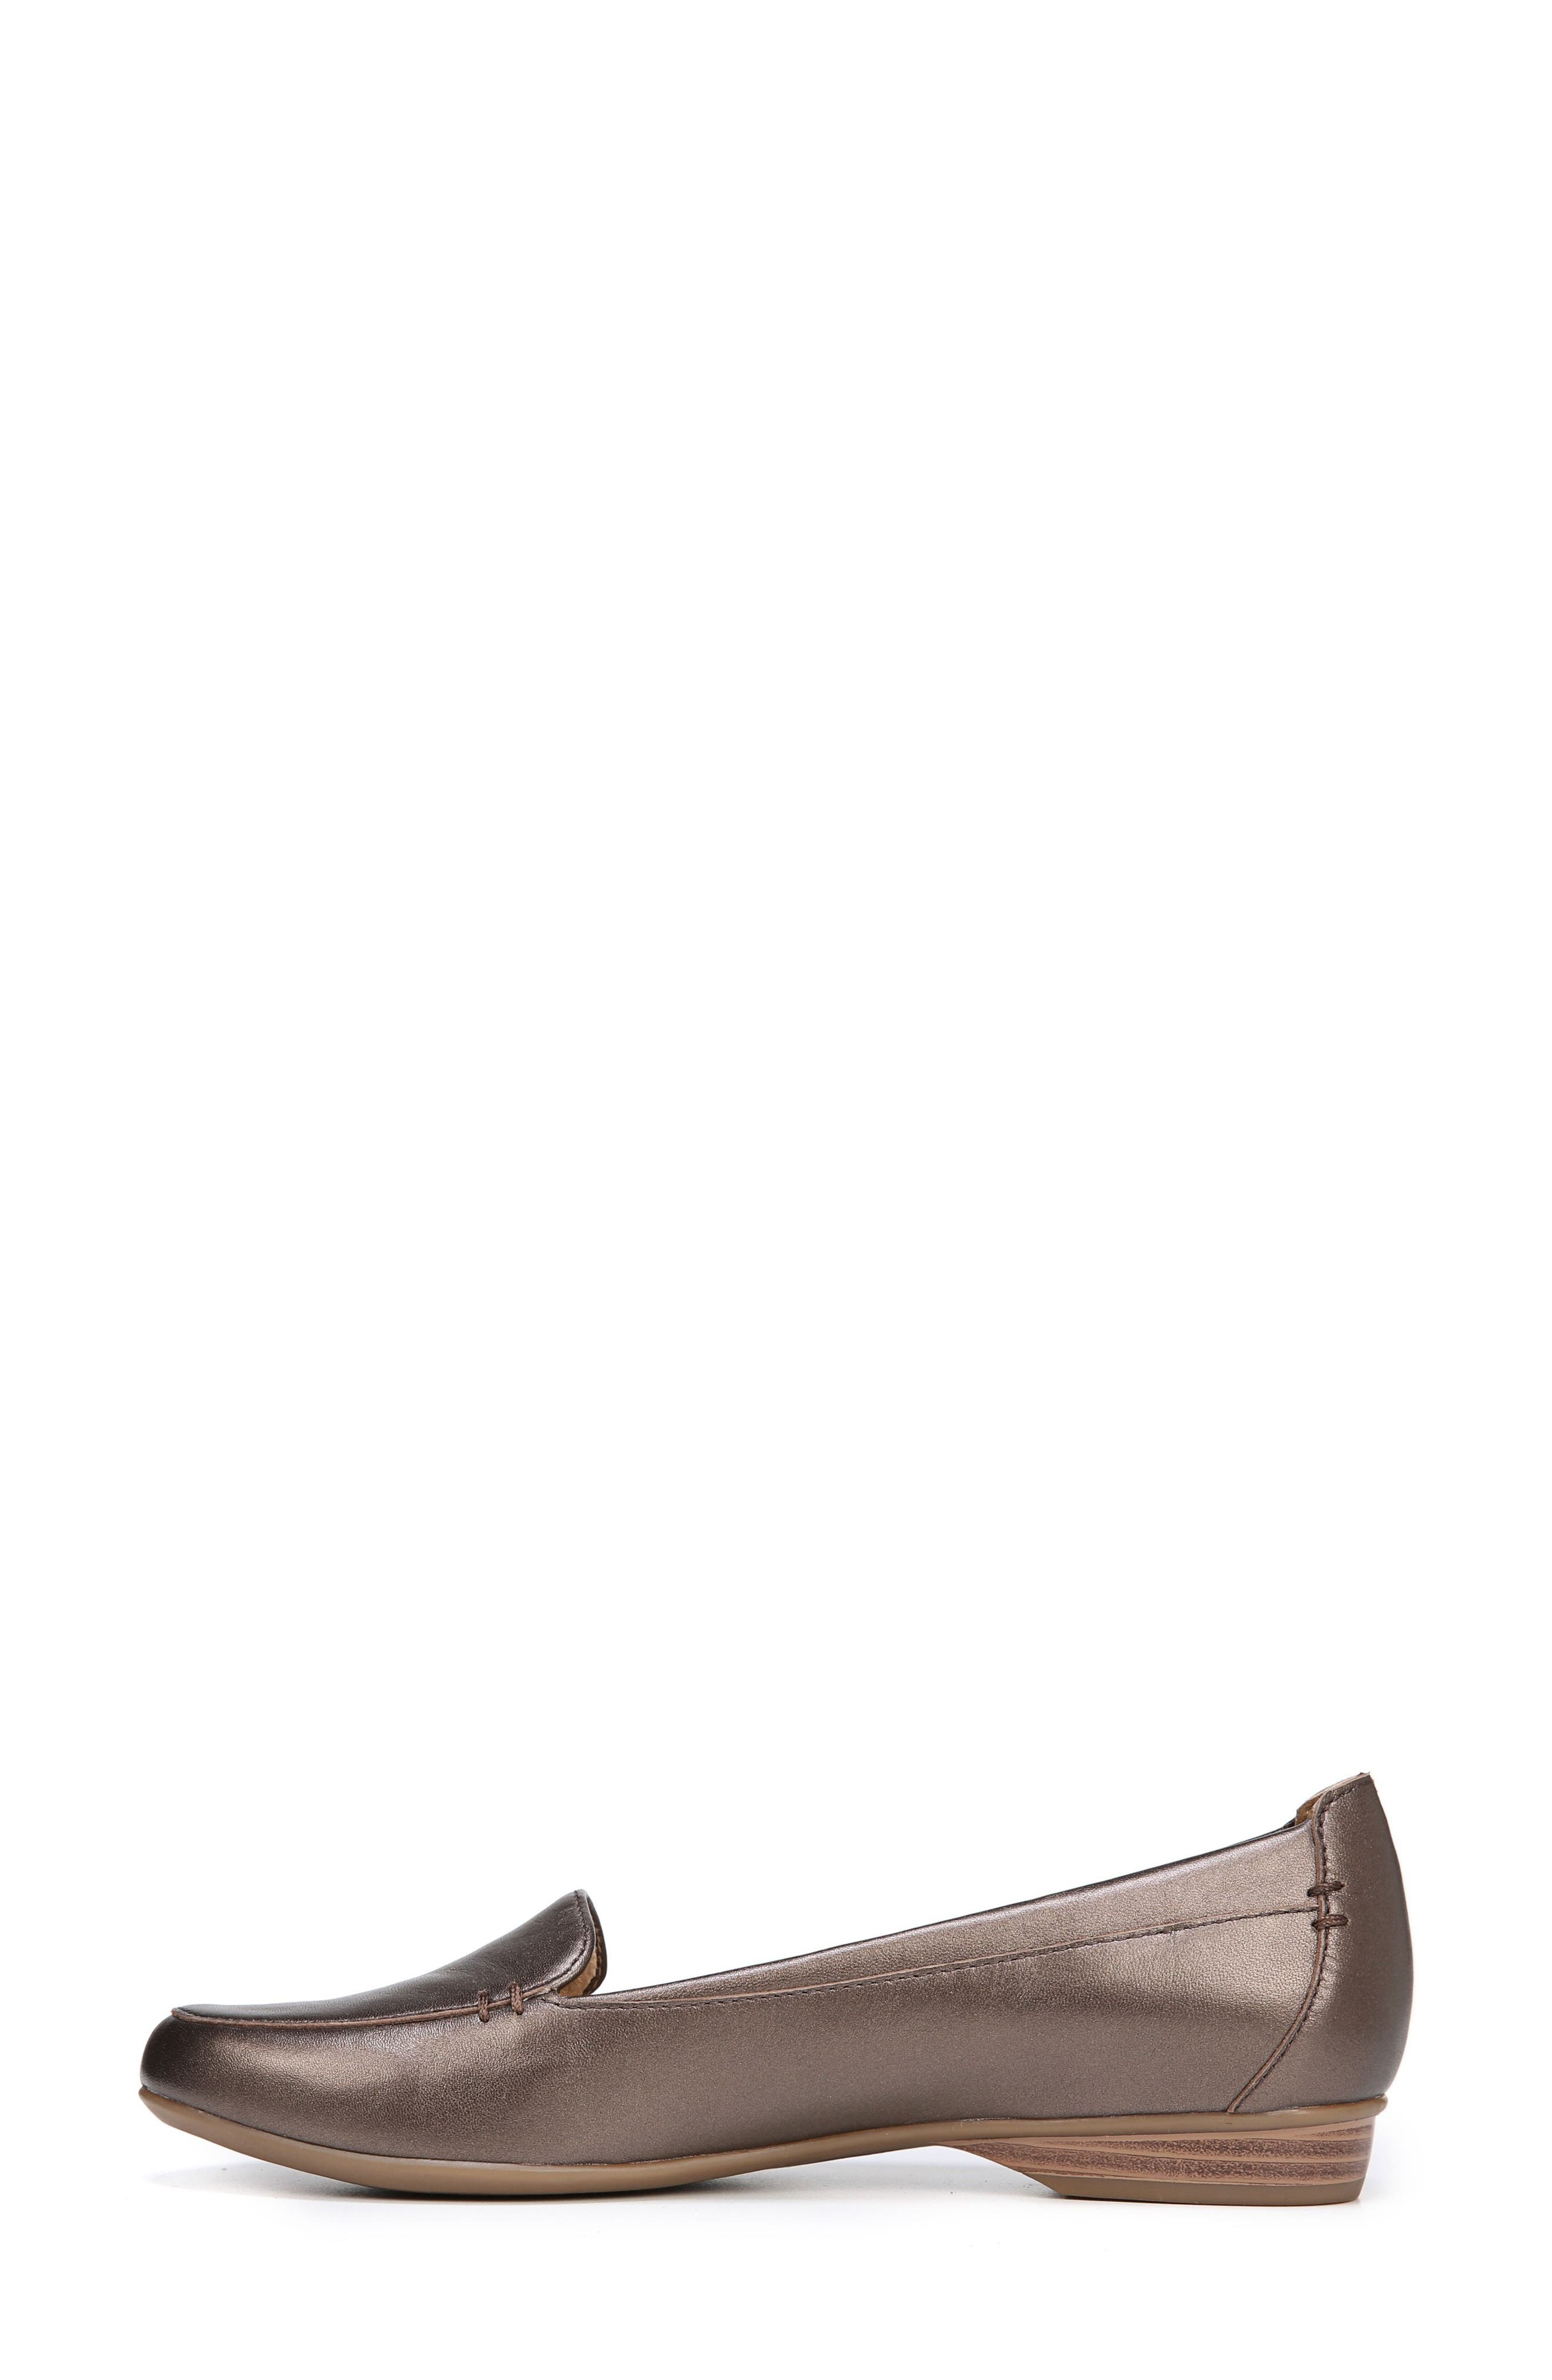 'Saban' Leather Loafer,                             Alternate thumbnail 7, color,                             BROWN BRONZE LEATHER